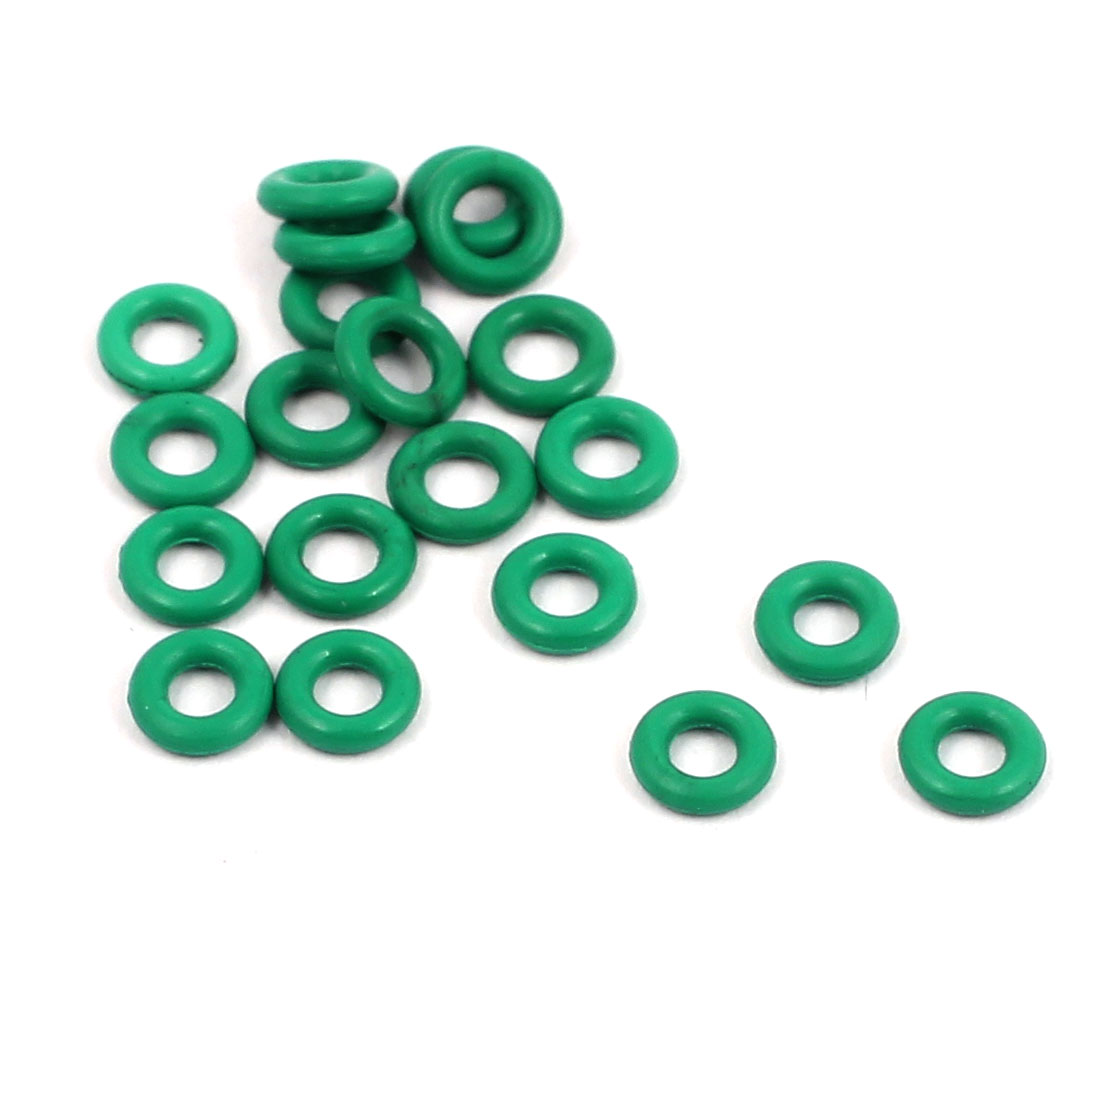 20Pcs 4mm x 1mm FKM Rubber O-rings Heat Resistant Sealing Ring Grommets Green